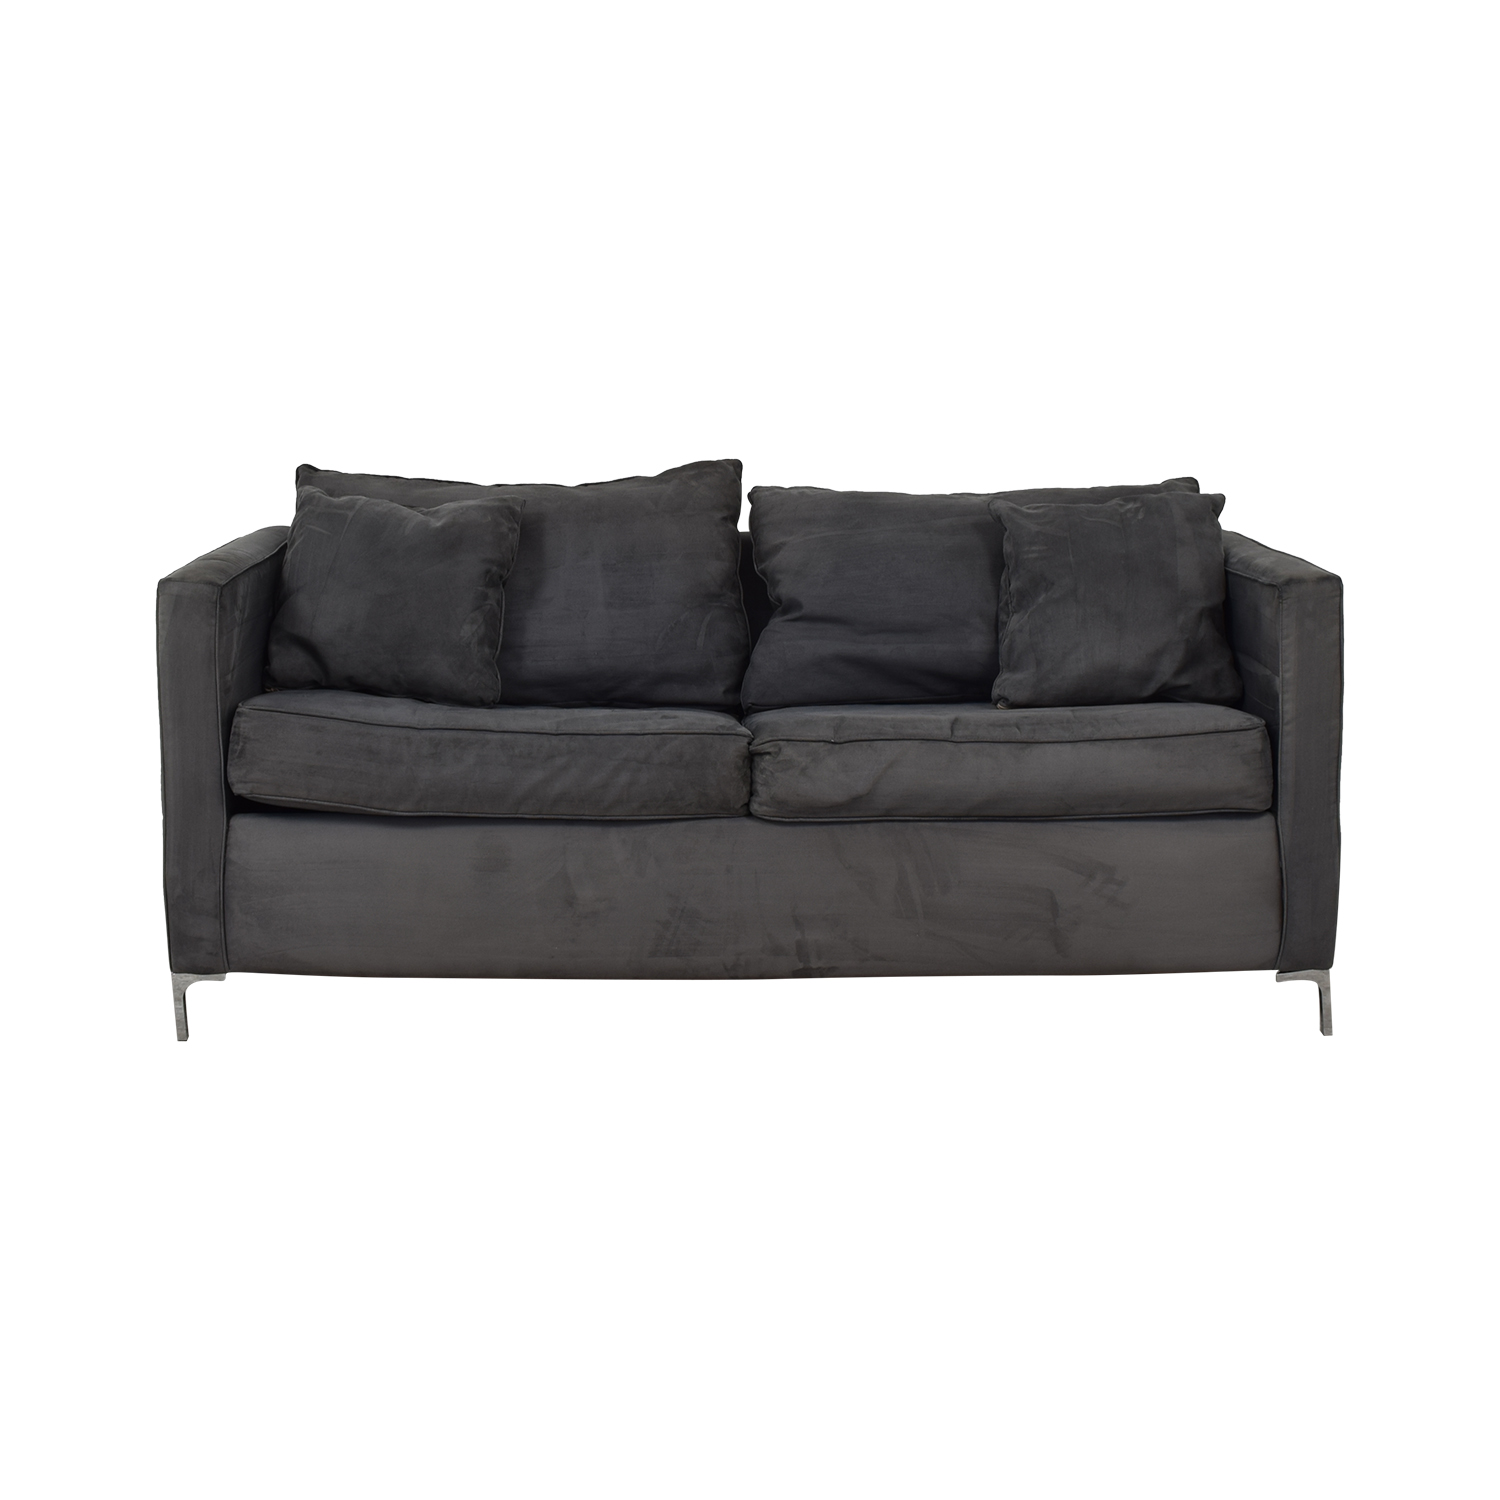 Gray Suede Pull Out Sofabed / Sofas